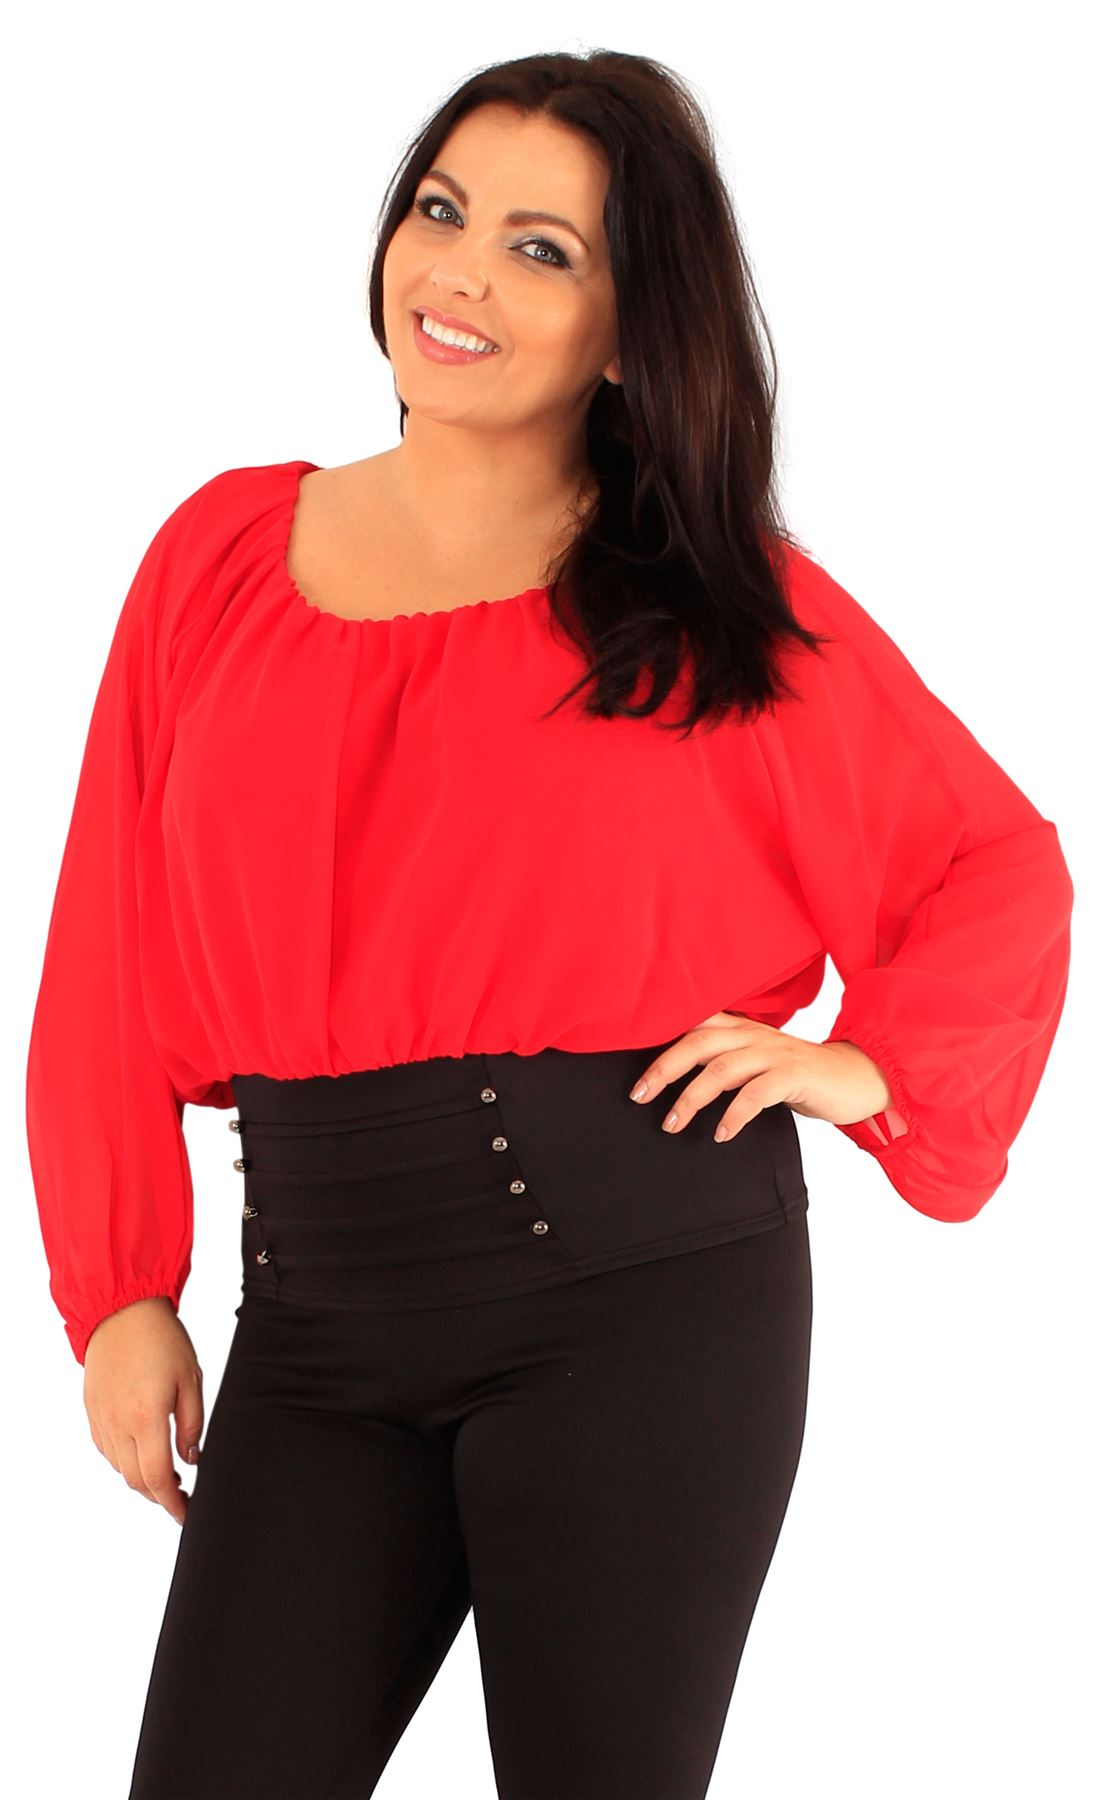 Shop for stylish womens tops from the ASDA George womens clothing range. Our wide range includes printed tops, evening tops & fleece tops. Order online today!